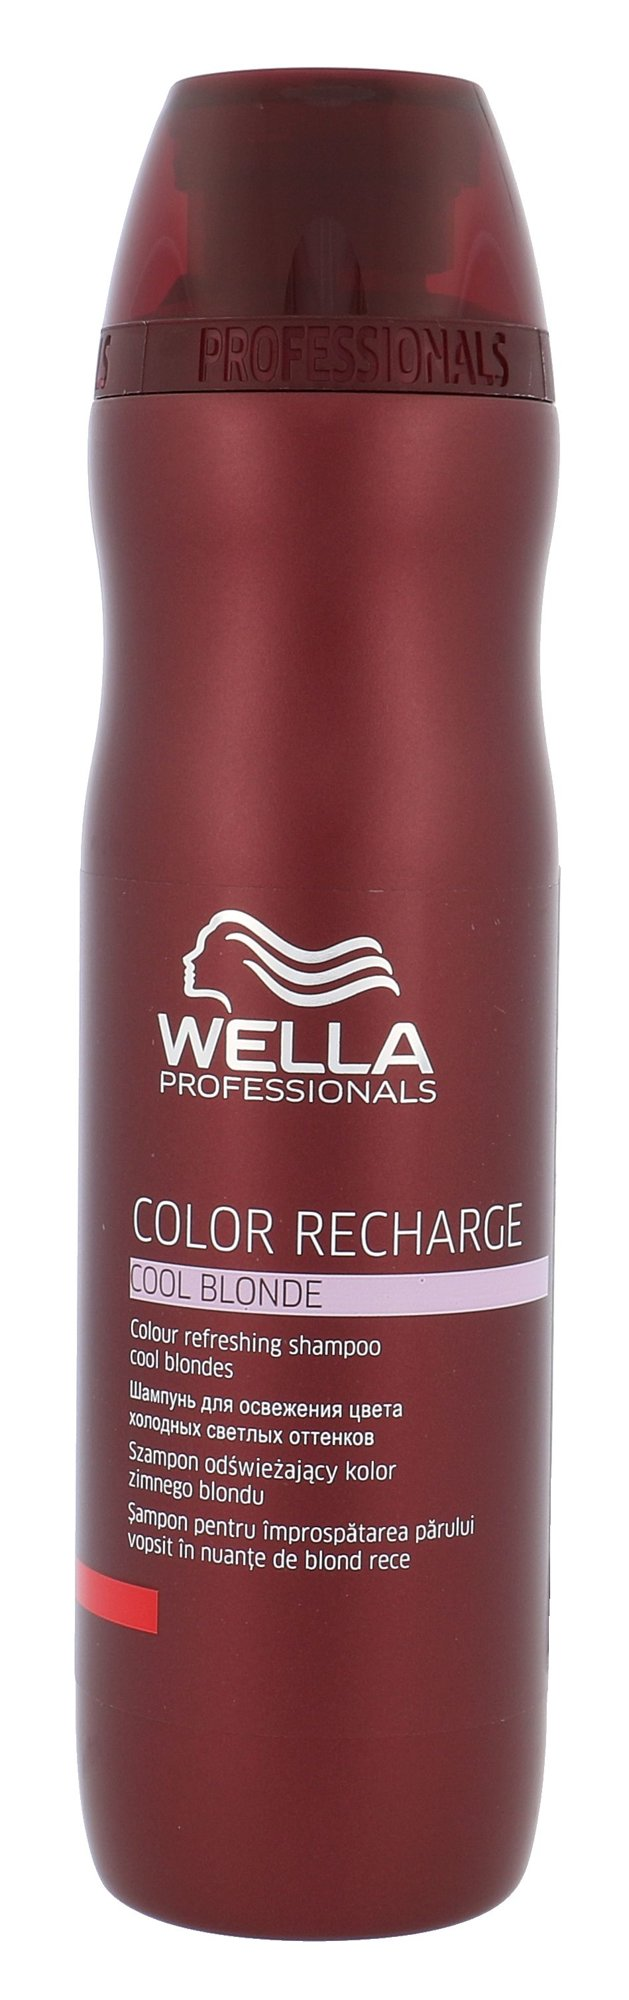 Wella Color Recharge Cosmetic 250ml